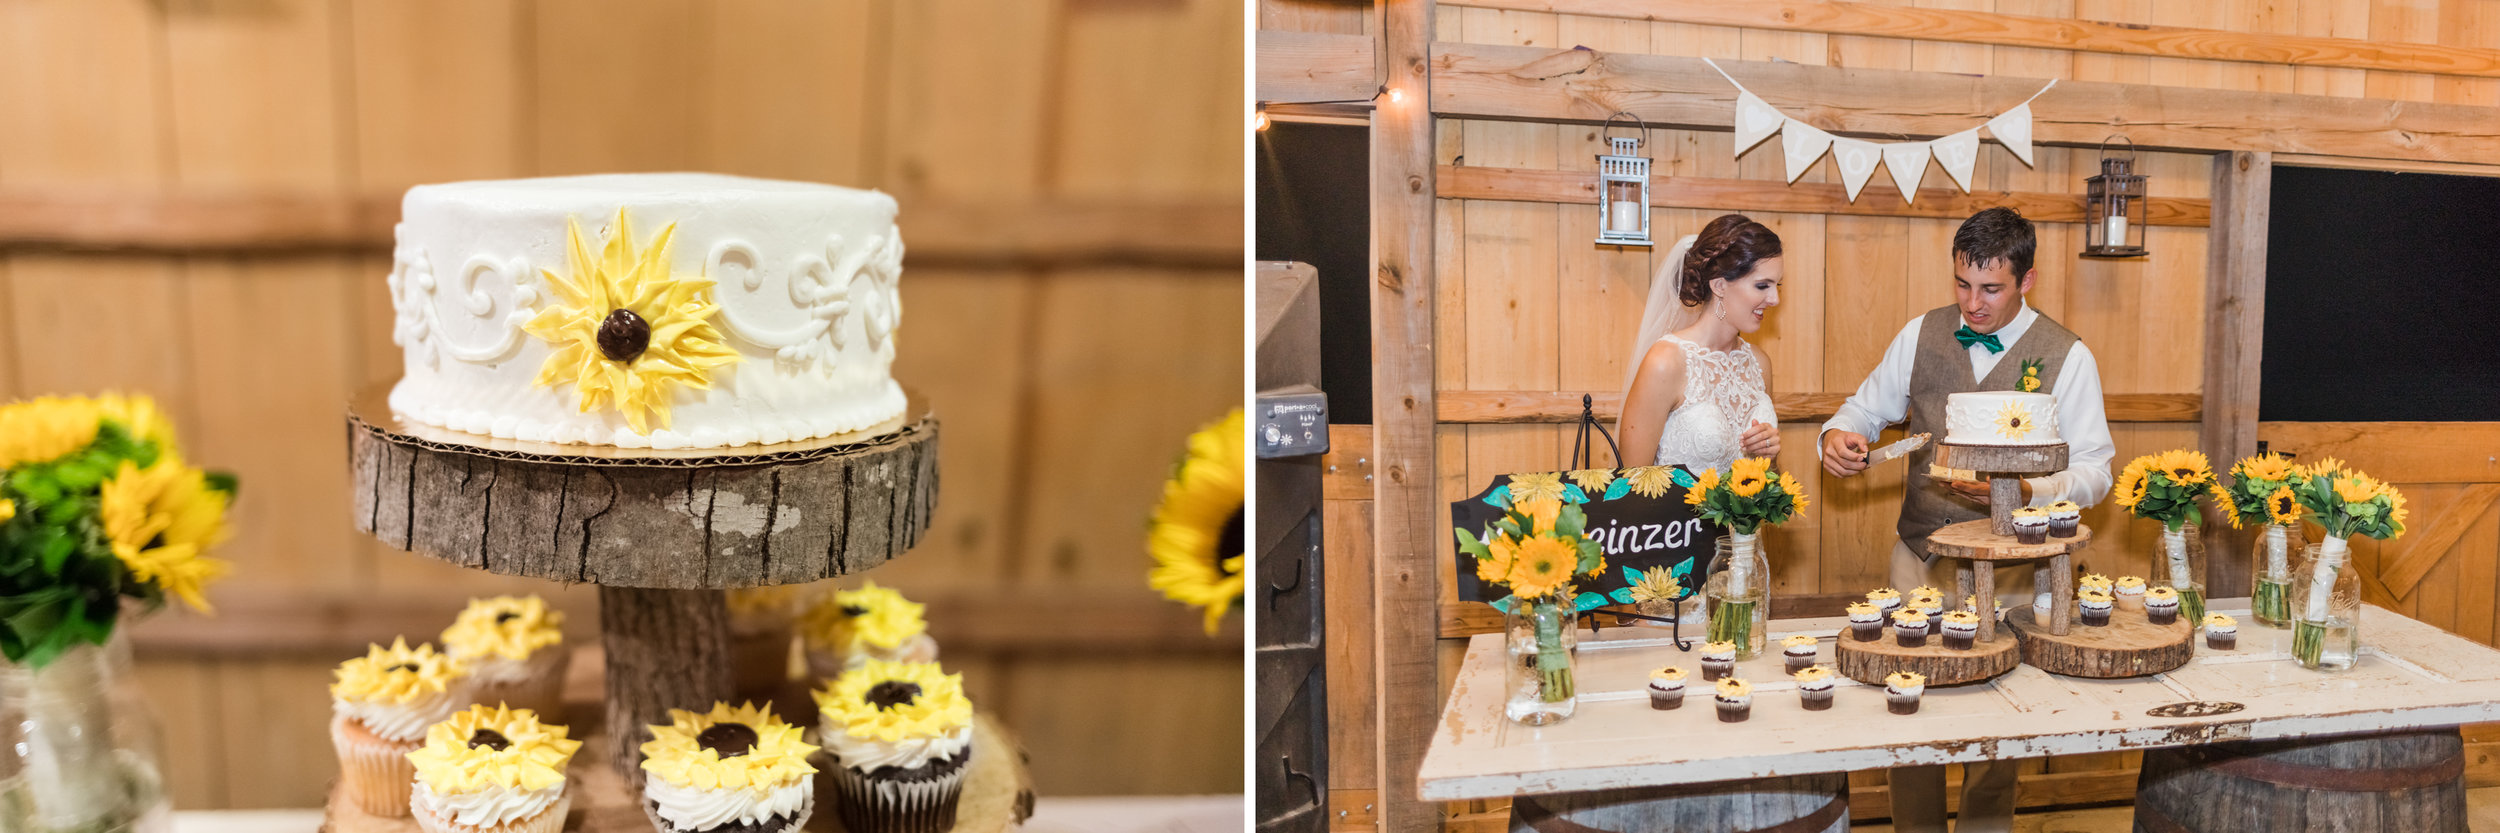 Bentonville Wedding Photographer Holland Barn 19.jpg